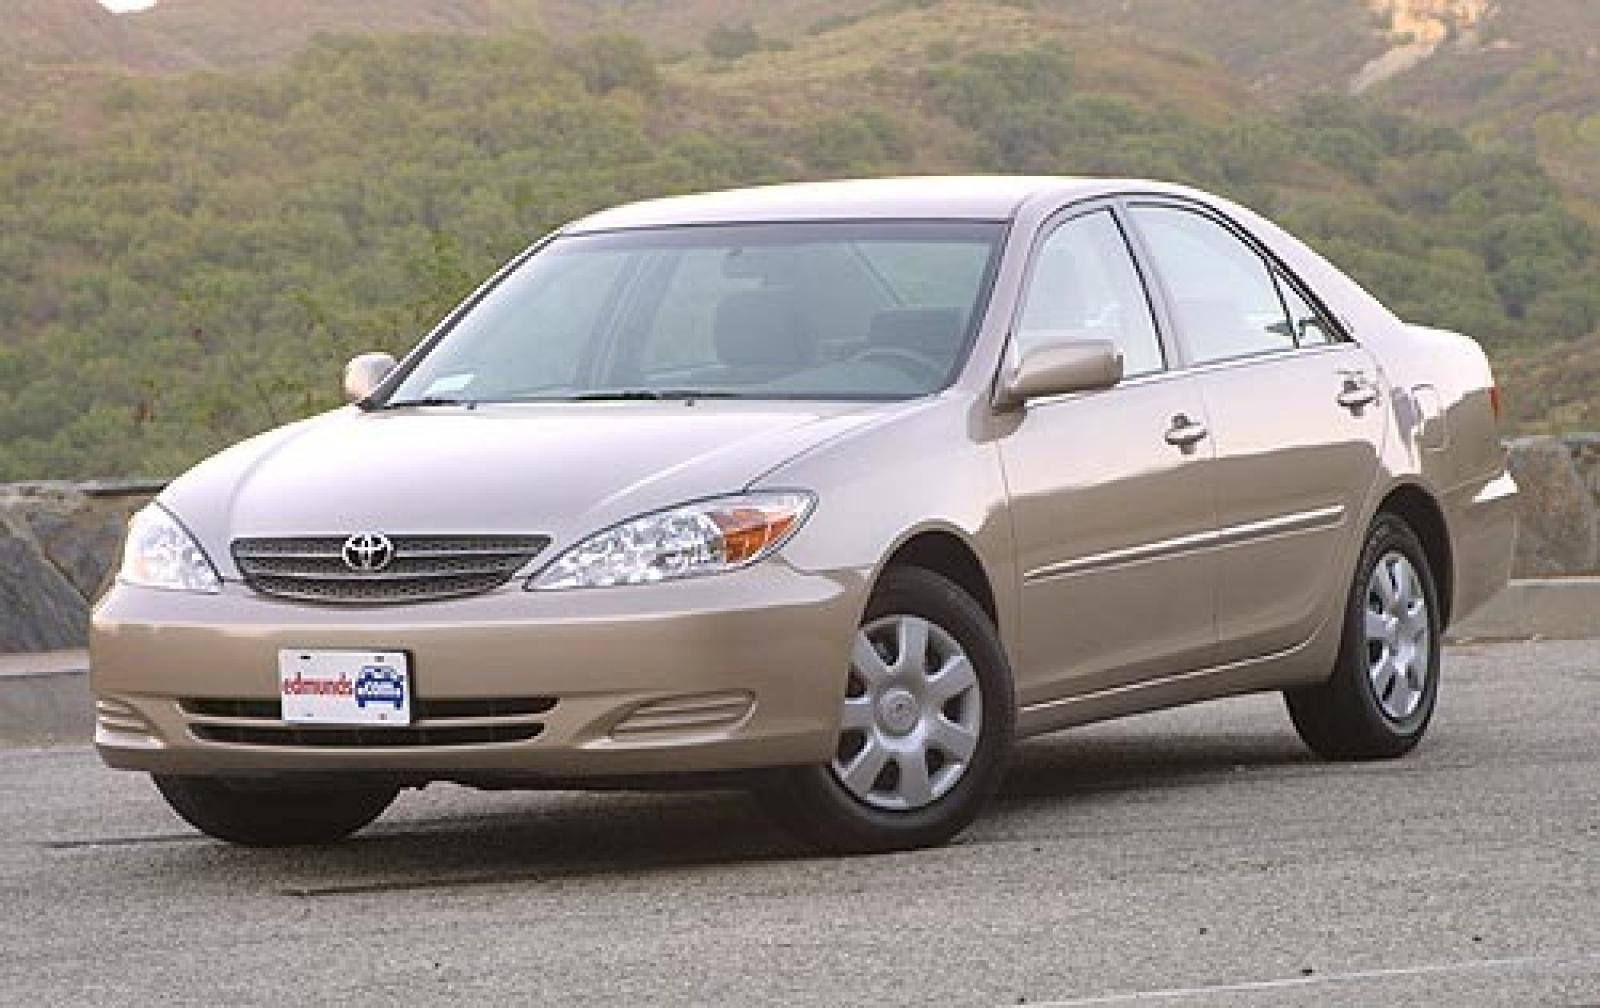 2004 Toyota Camry Information And Photos Zomb Drive